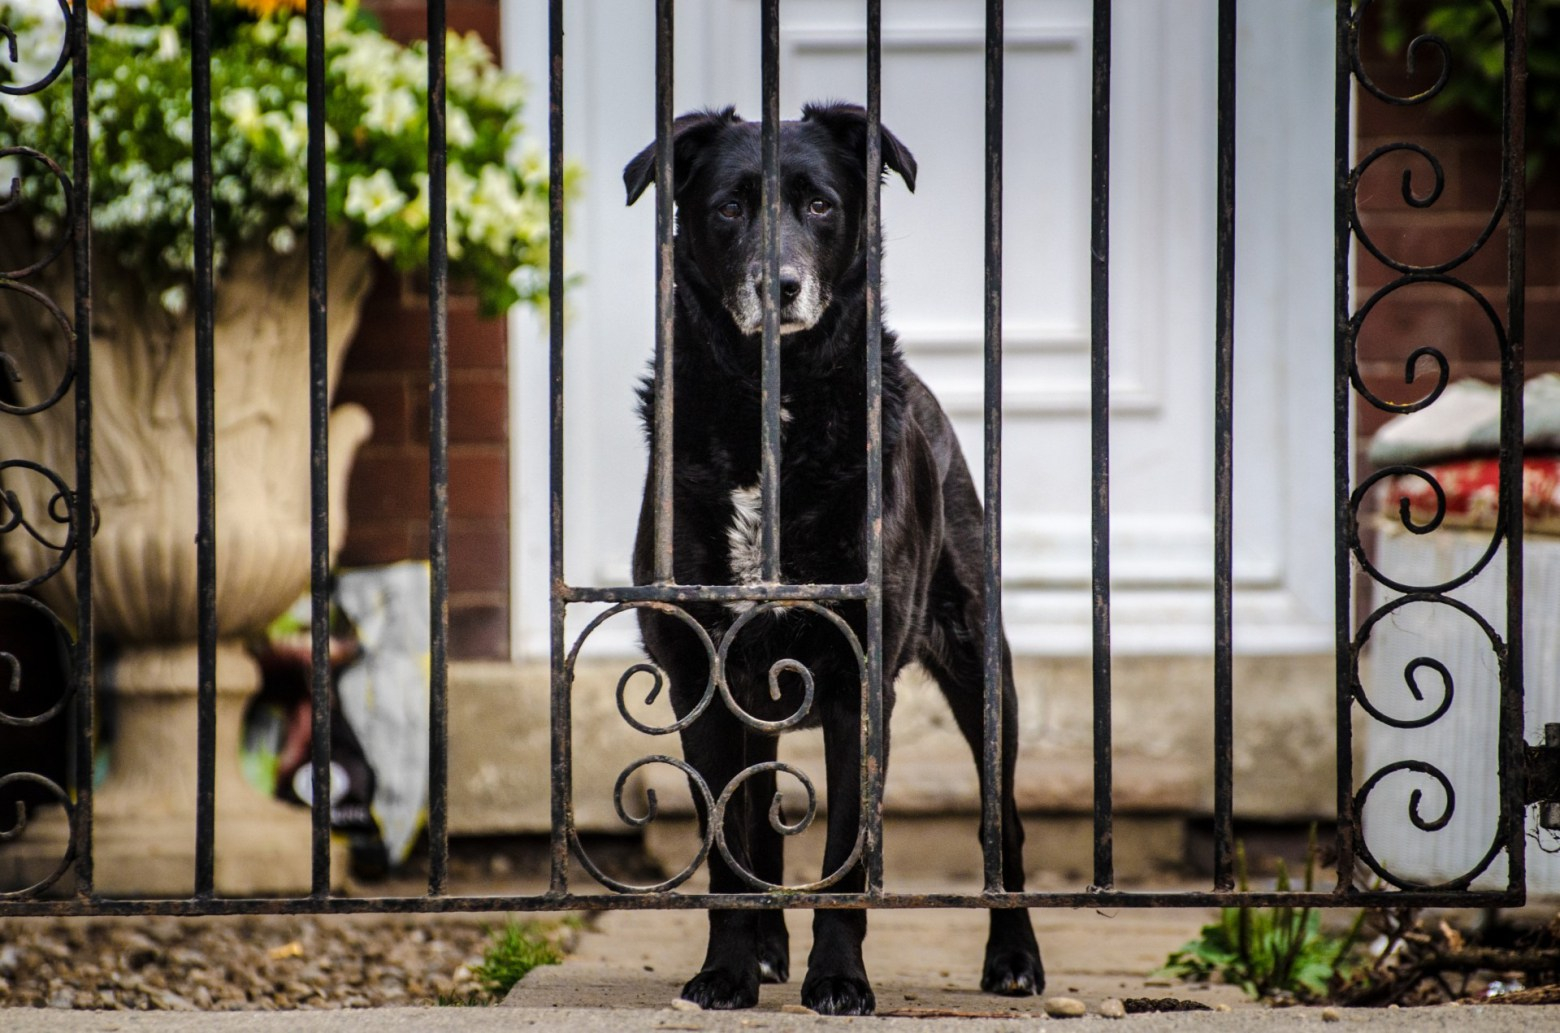 4 Ways Your Home Security is Endangering Your Pet